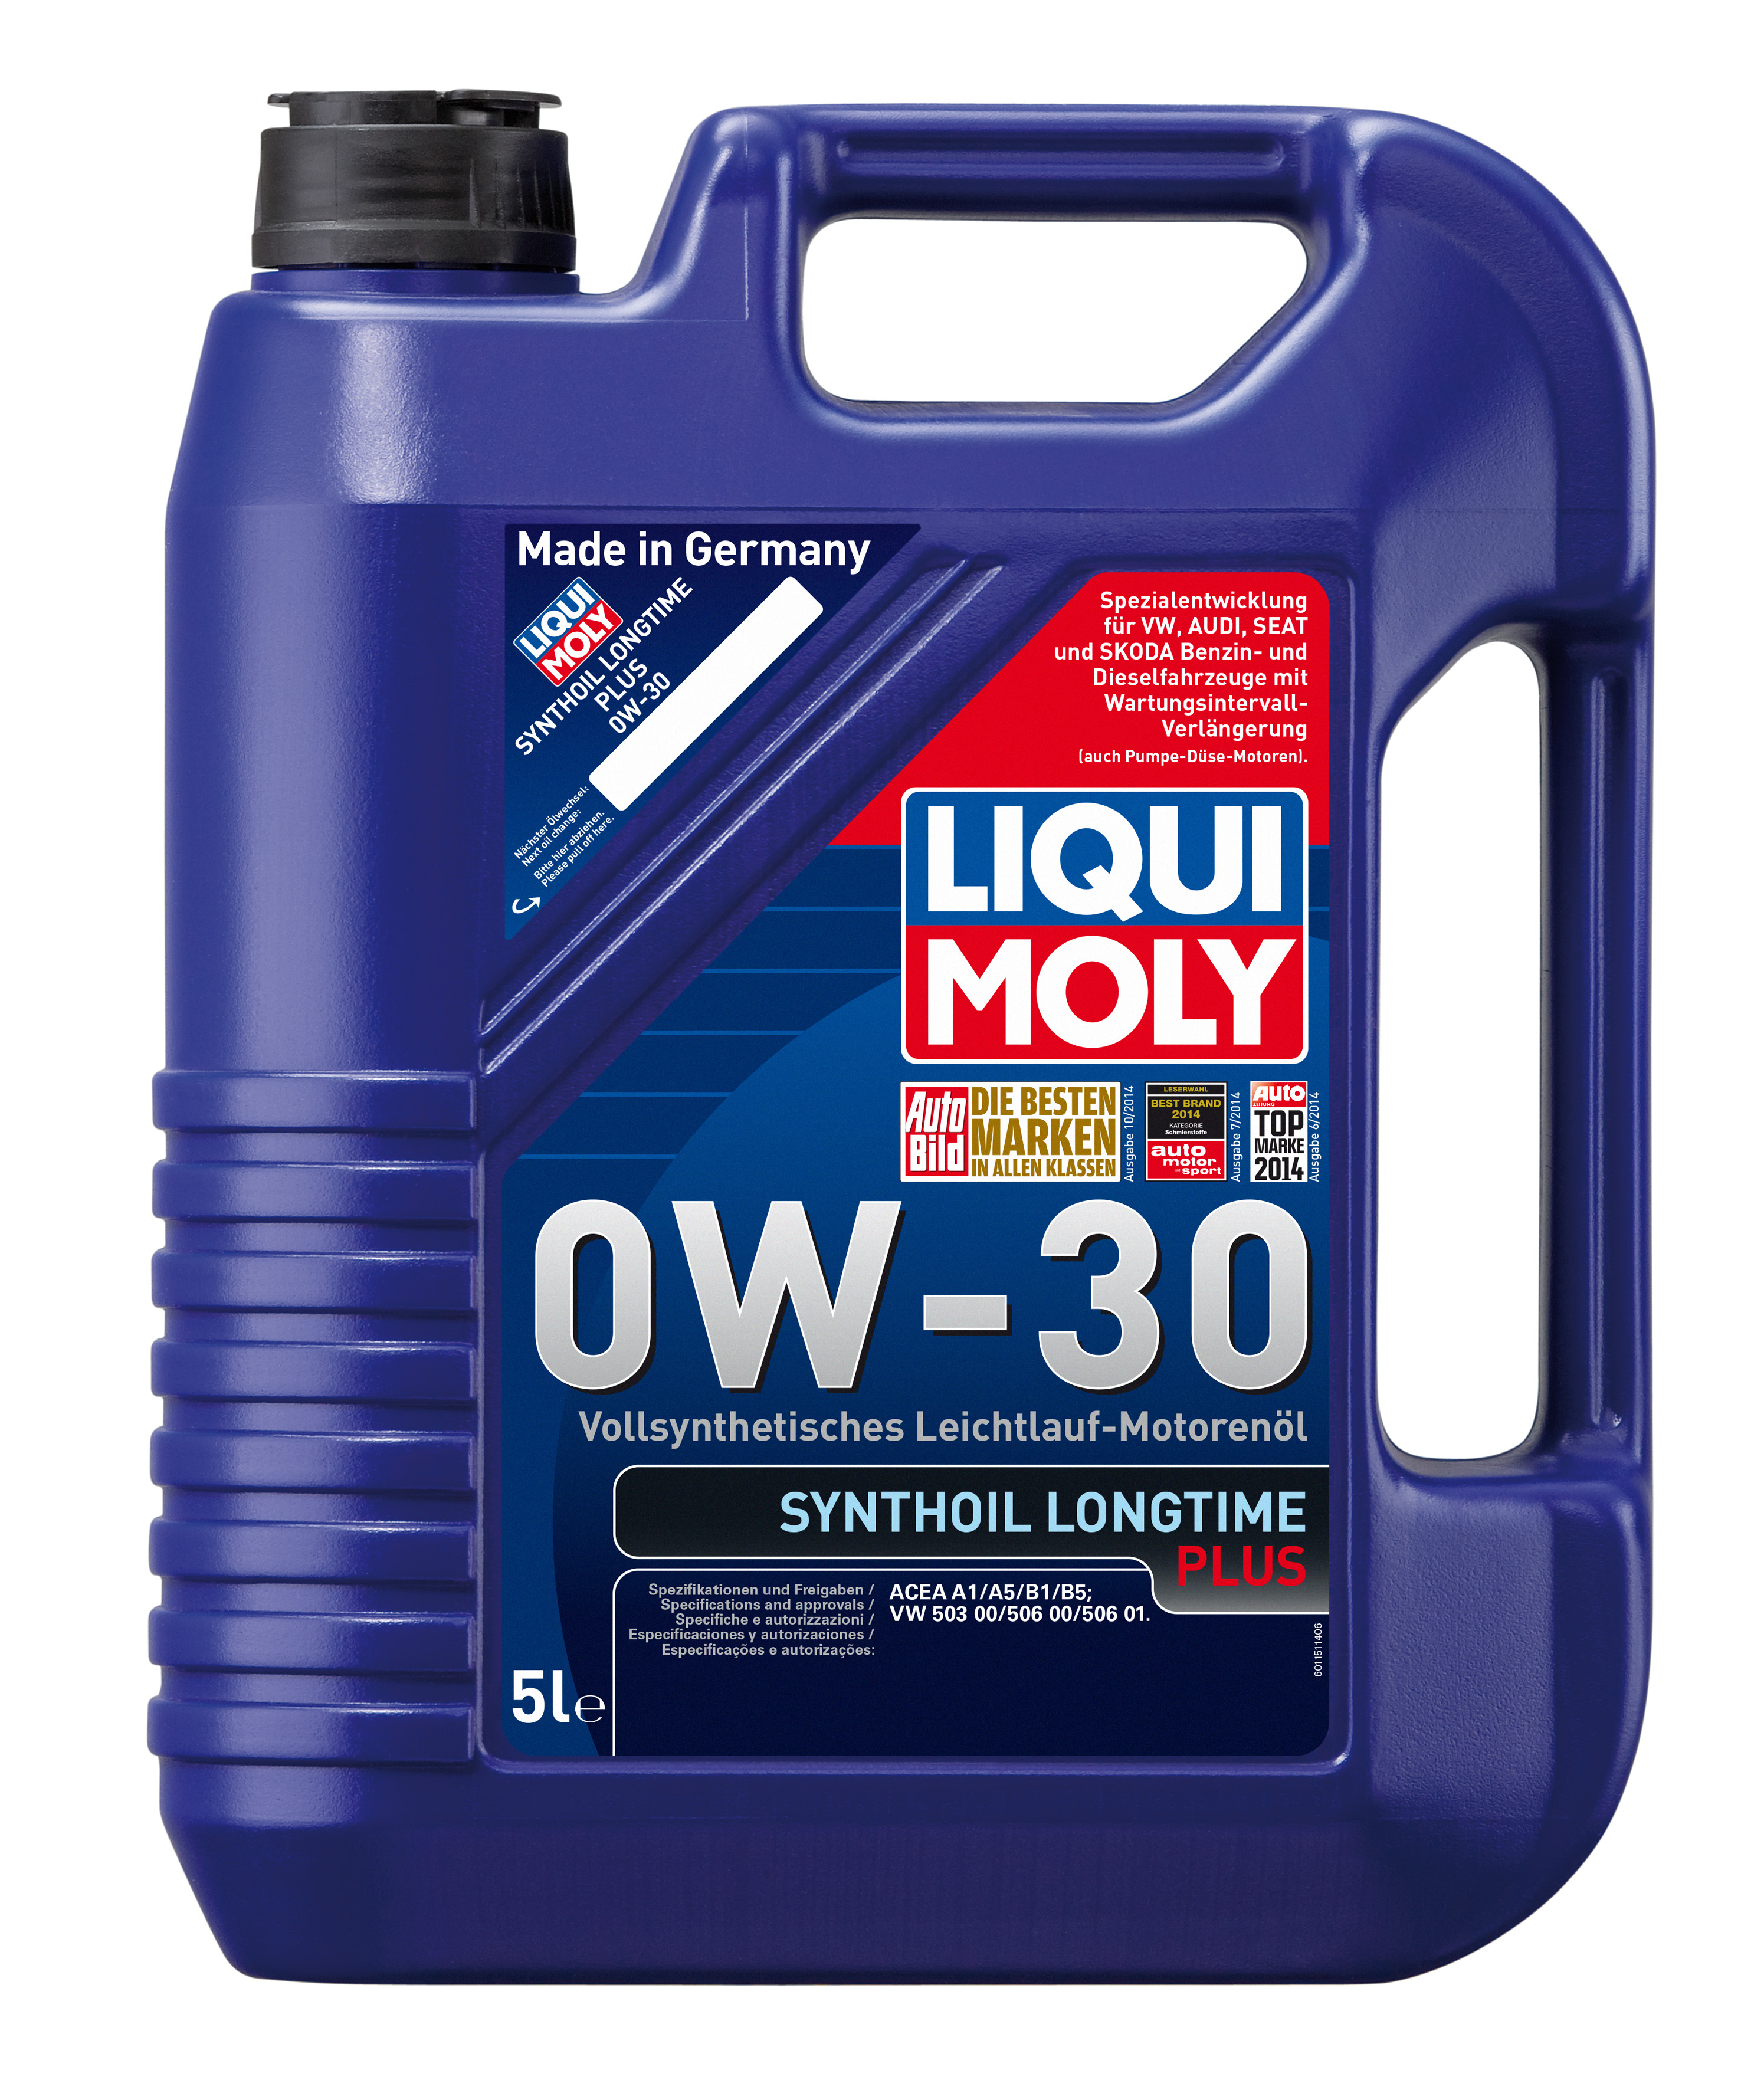 ULEI MOTOR LIQUI MOLY SYNTHOIL LONGTIME PLUS 0W30 5L